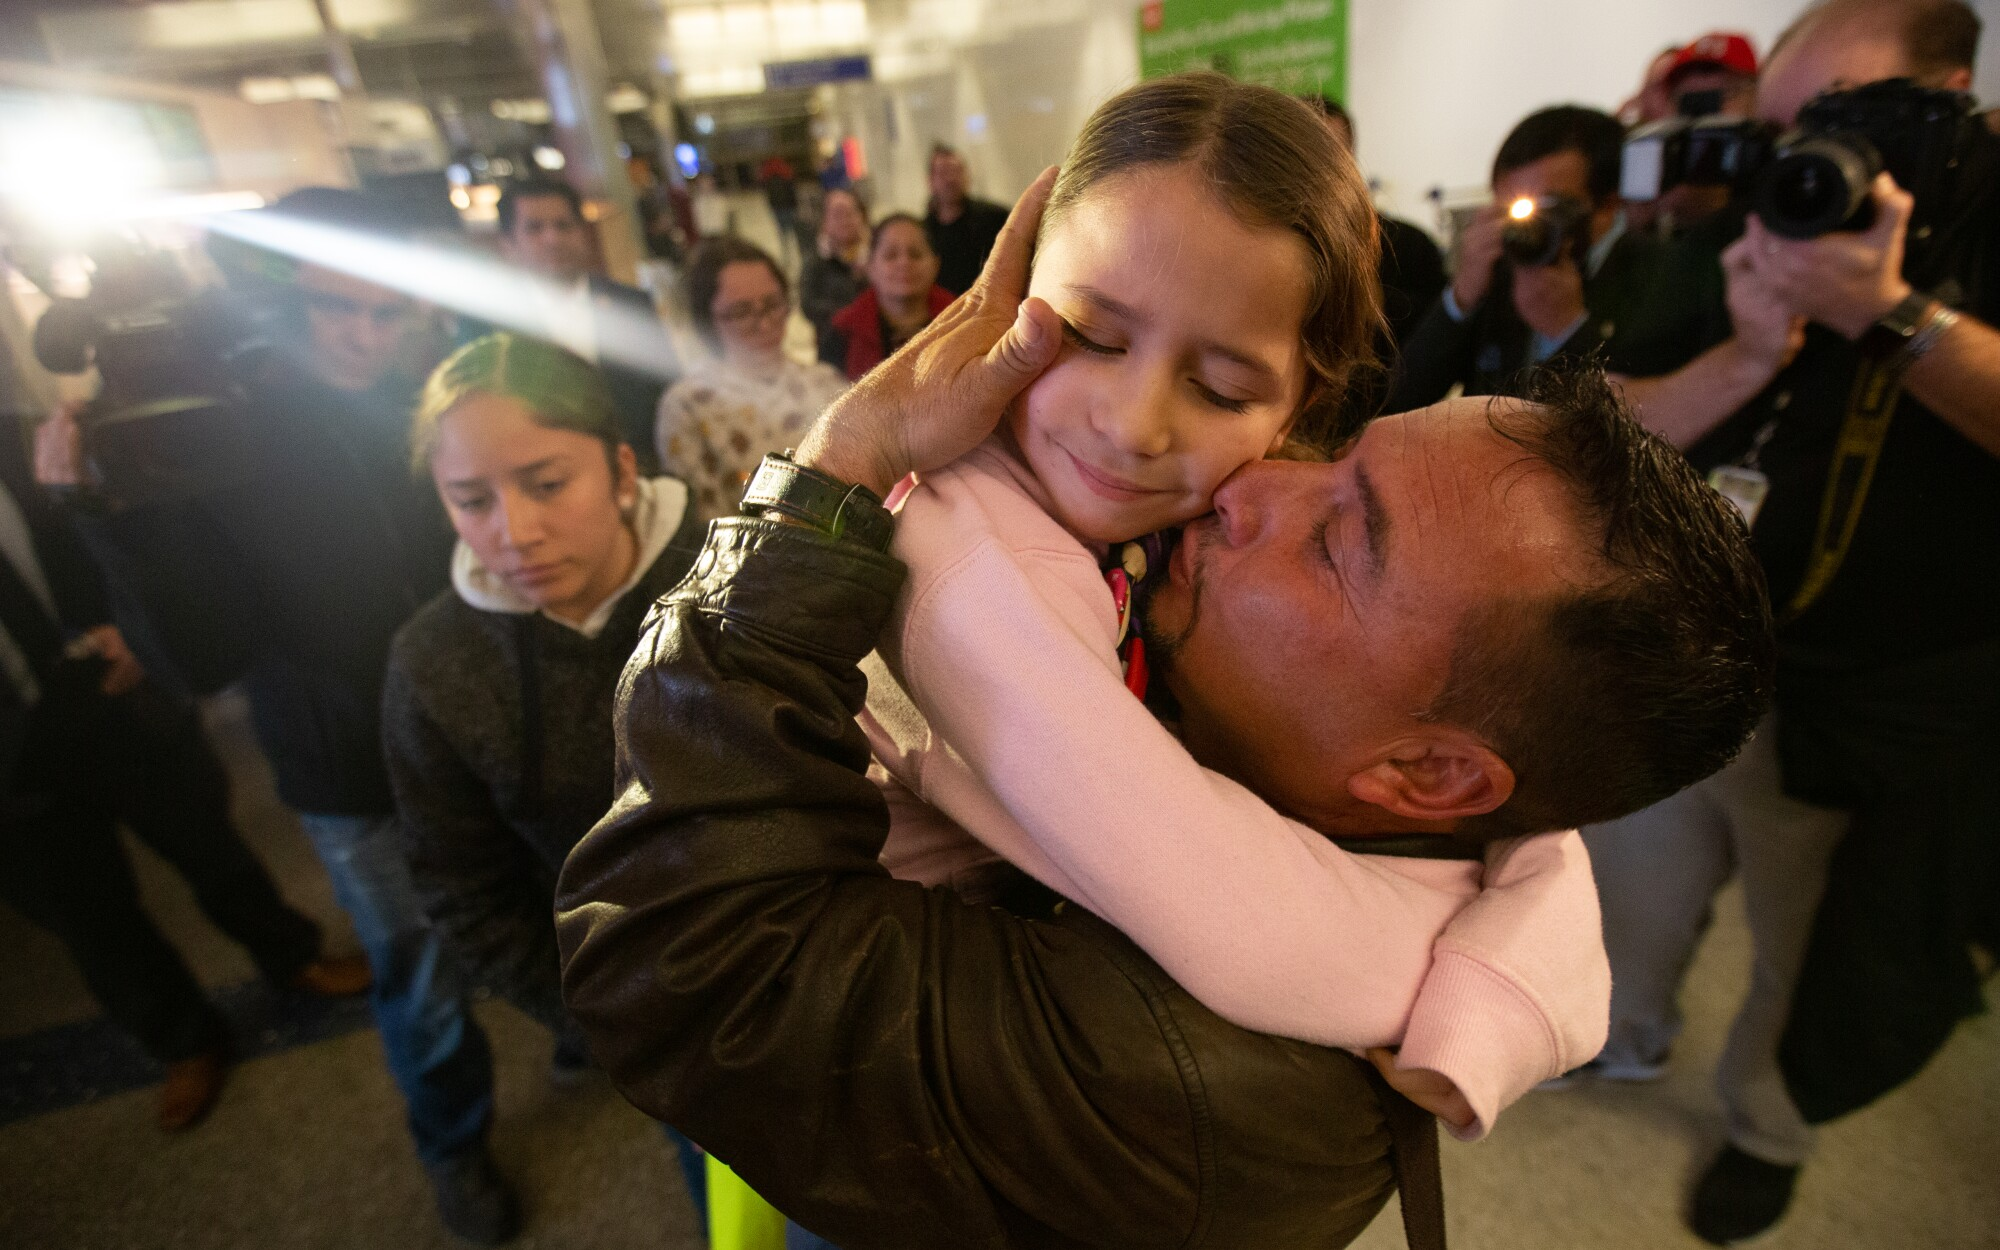 Migrant parents separated from children since 2018 are reunited at LAX -  Los Angeles Times